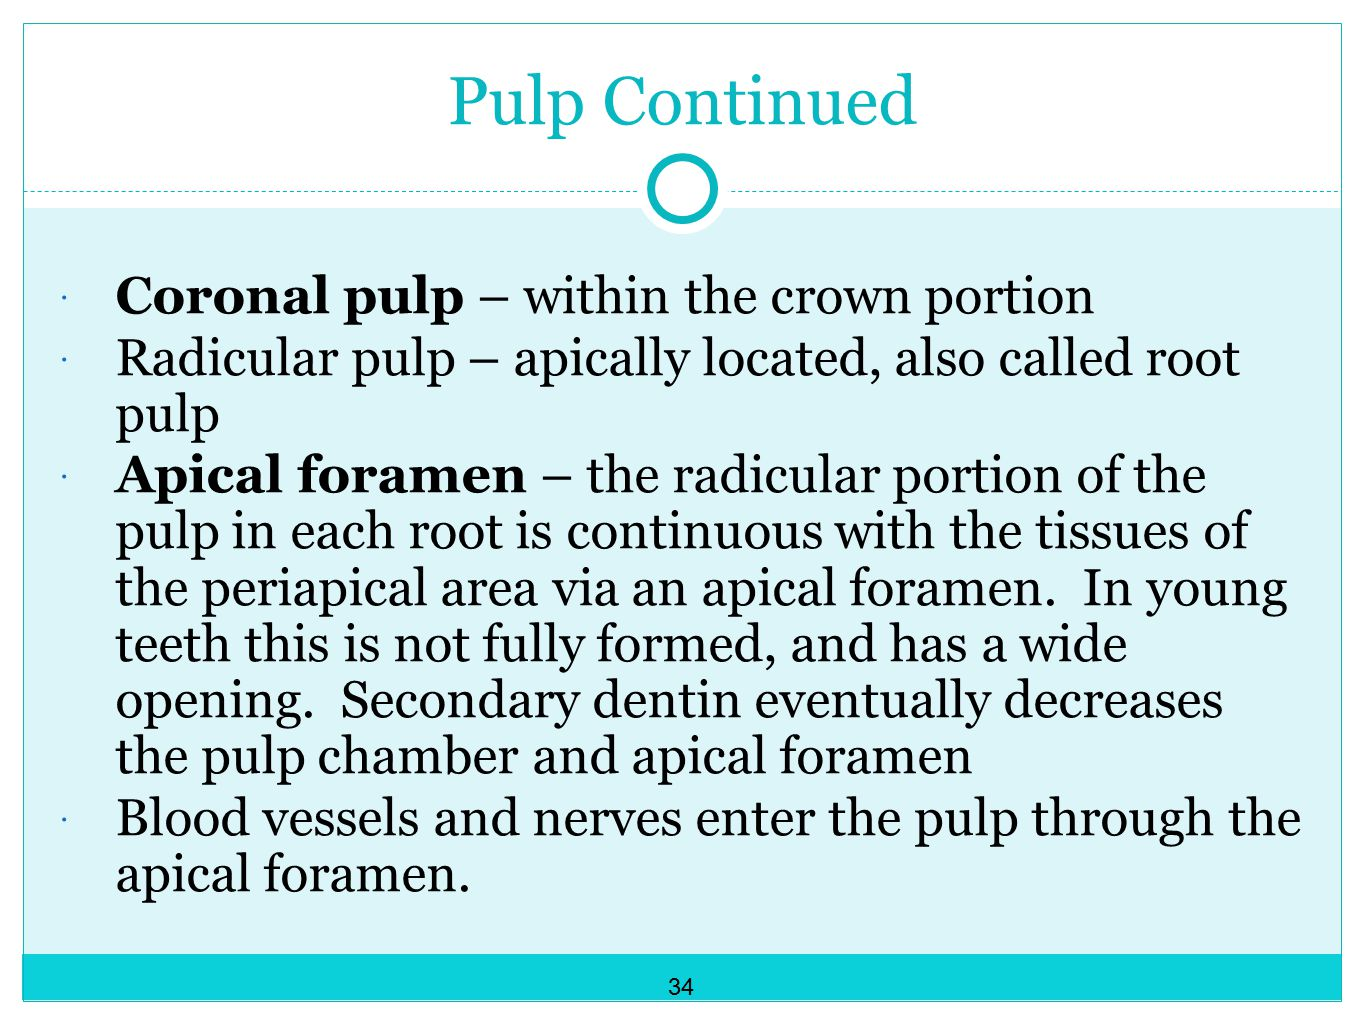 Pulp Continued  Coronal pulp – within the crown portion  Radicular pulp – apically located, also called root pulp  Apical foramen – the radicular portion of the pulp in each root is continuous with the tissues of the periapical area via an apical foramen.